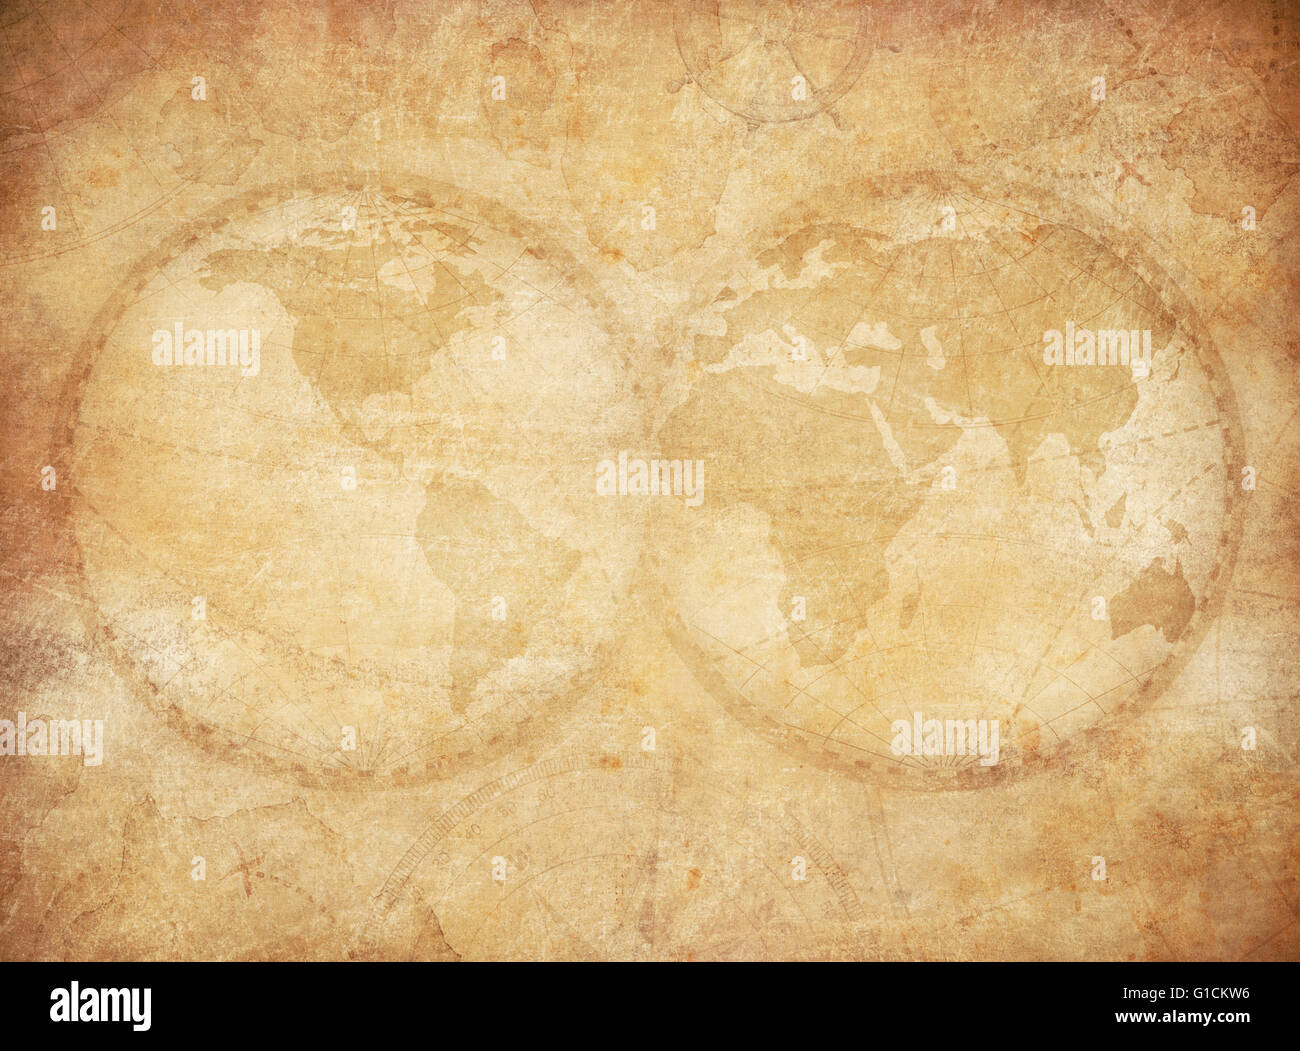 Old vintage world map background stock photo royalty free image old vintage world map background gumiabroncs Image collections